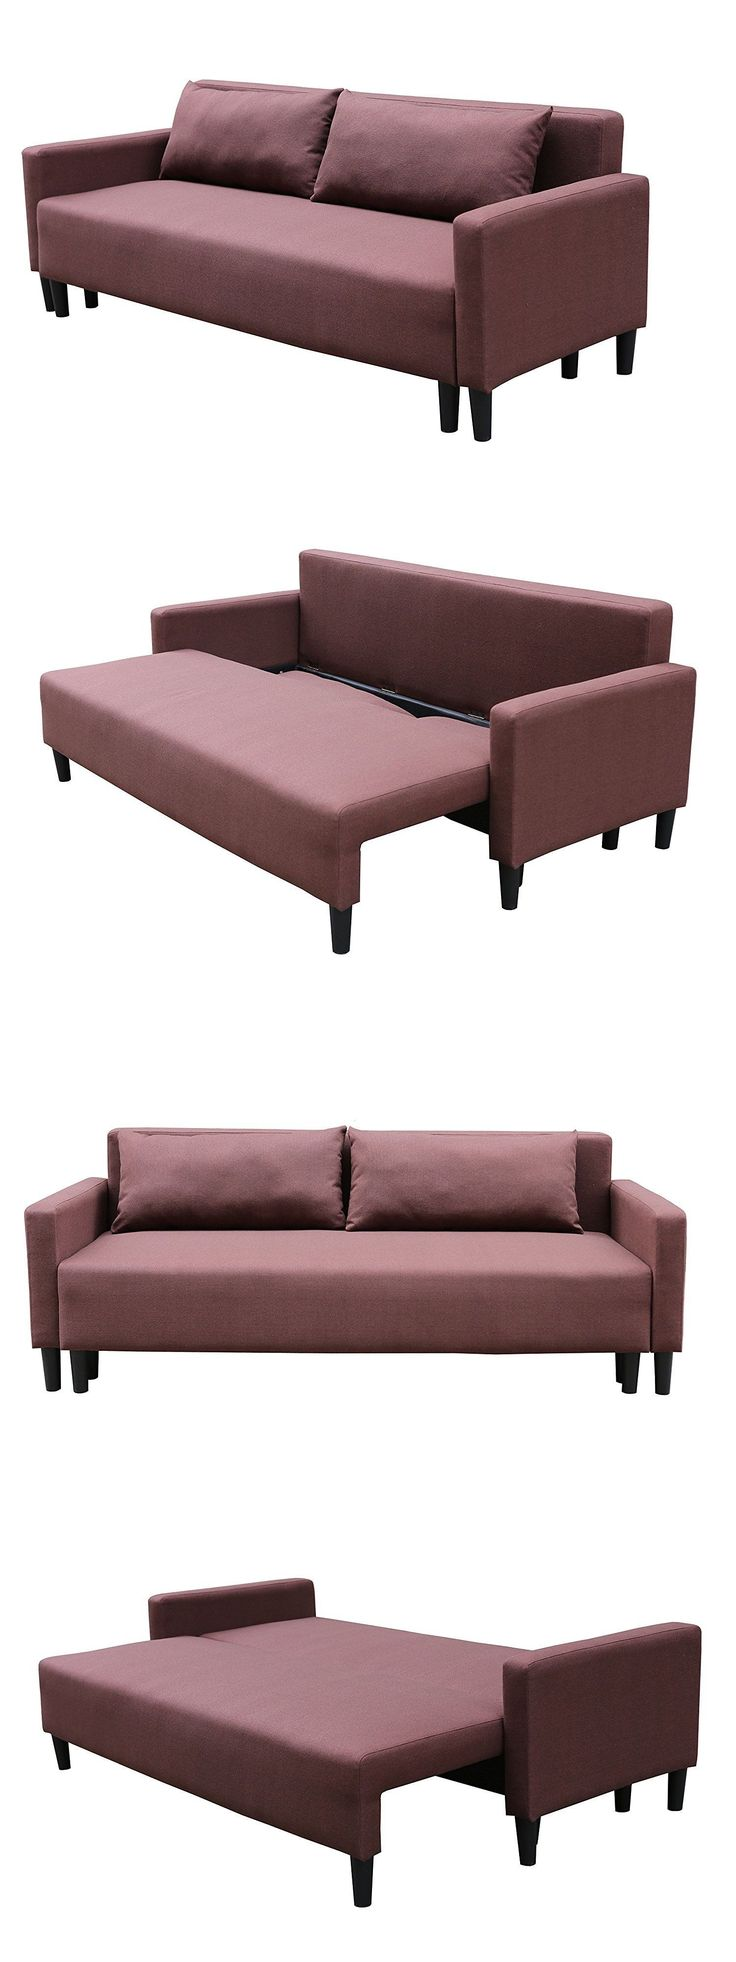 furniture: Futon Sofa Couch Bed Sleeper Convertible Modern Living Room Furniture Brown Wood -> BUY IT NOW ONLY: $175.85 on eBay!